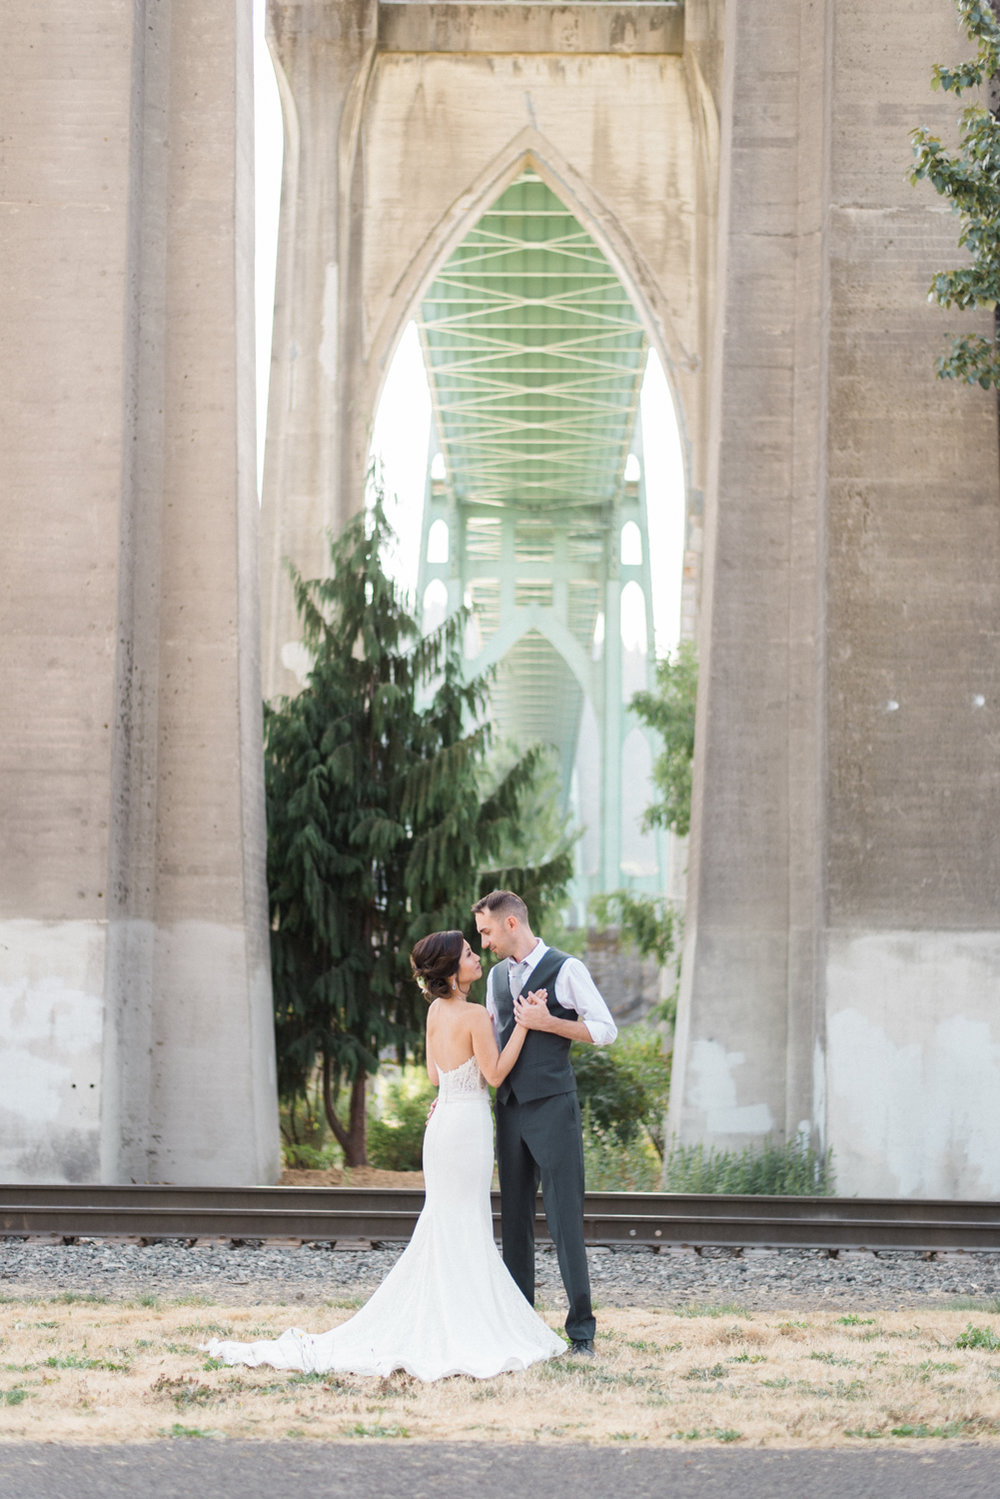 cathedral-park-wedding-st-johns-bridge-portland-shelley-marie-photo-2.jpg